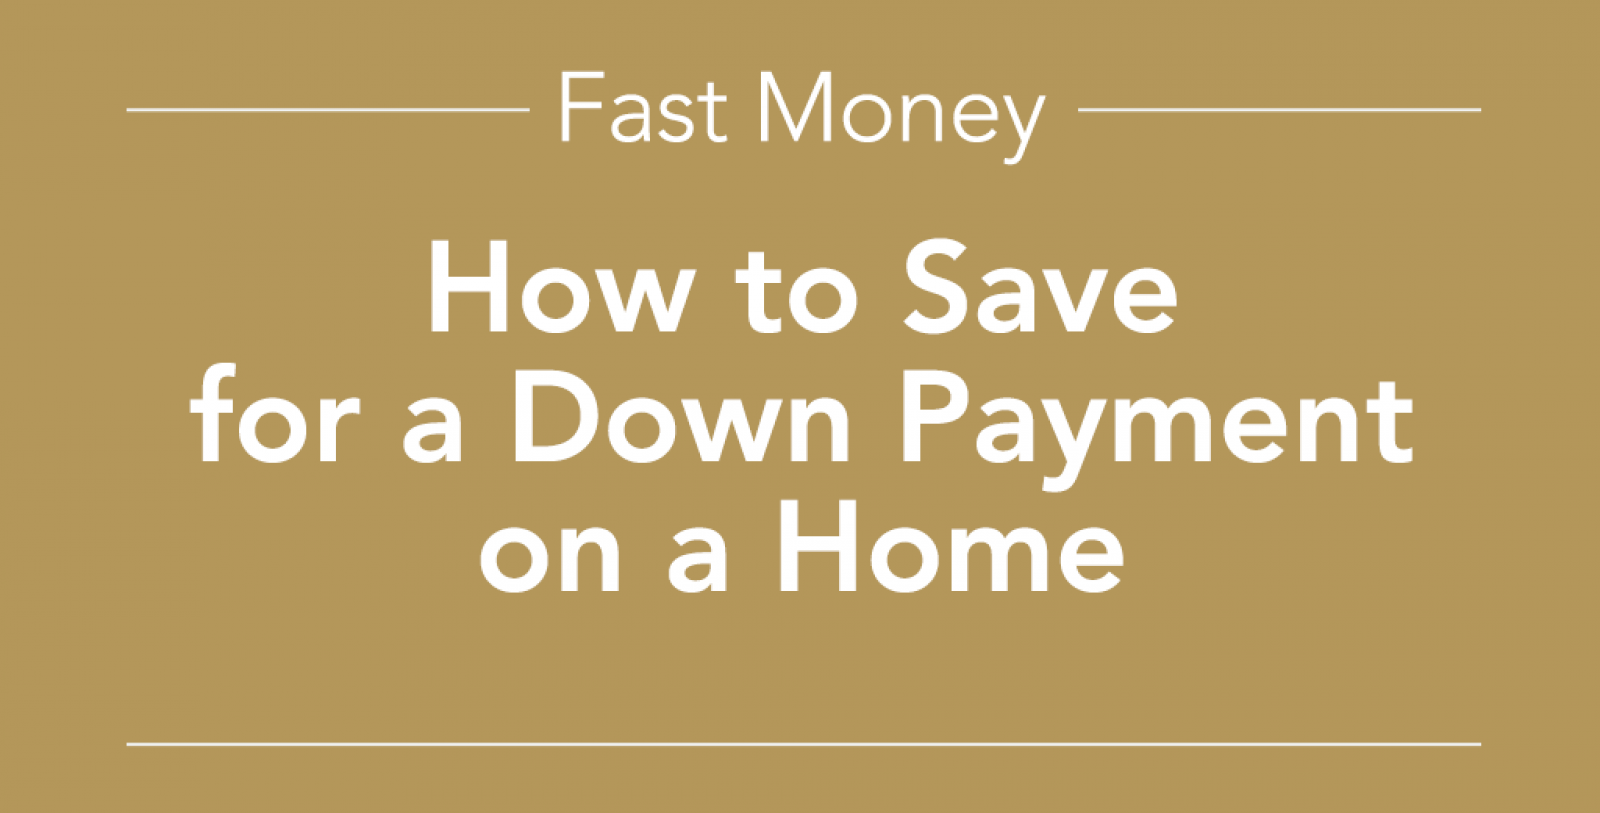 Fast Money How to Save for a Down Payment